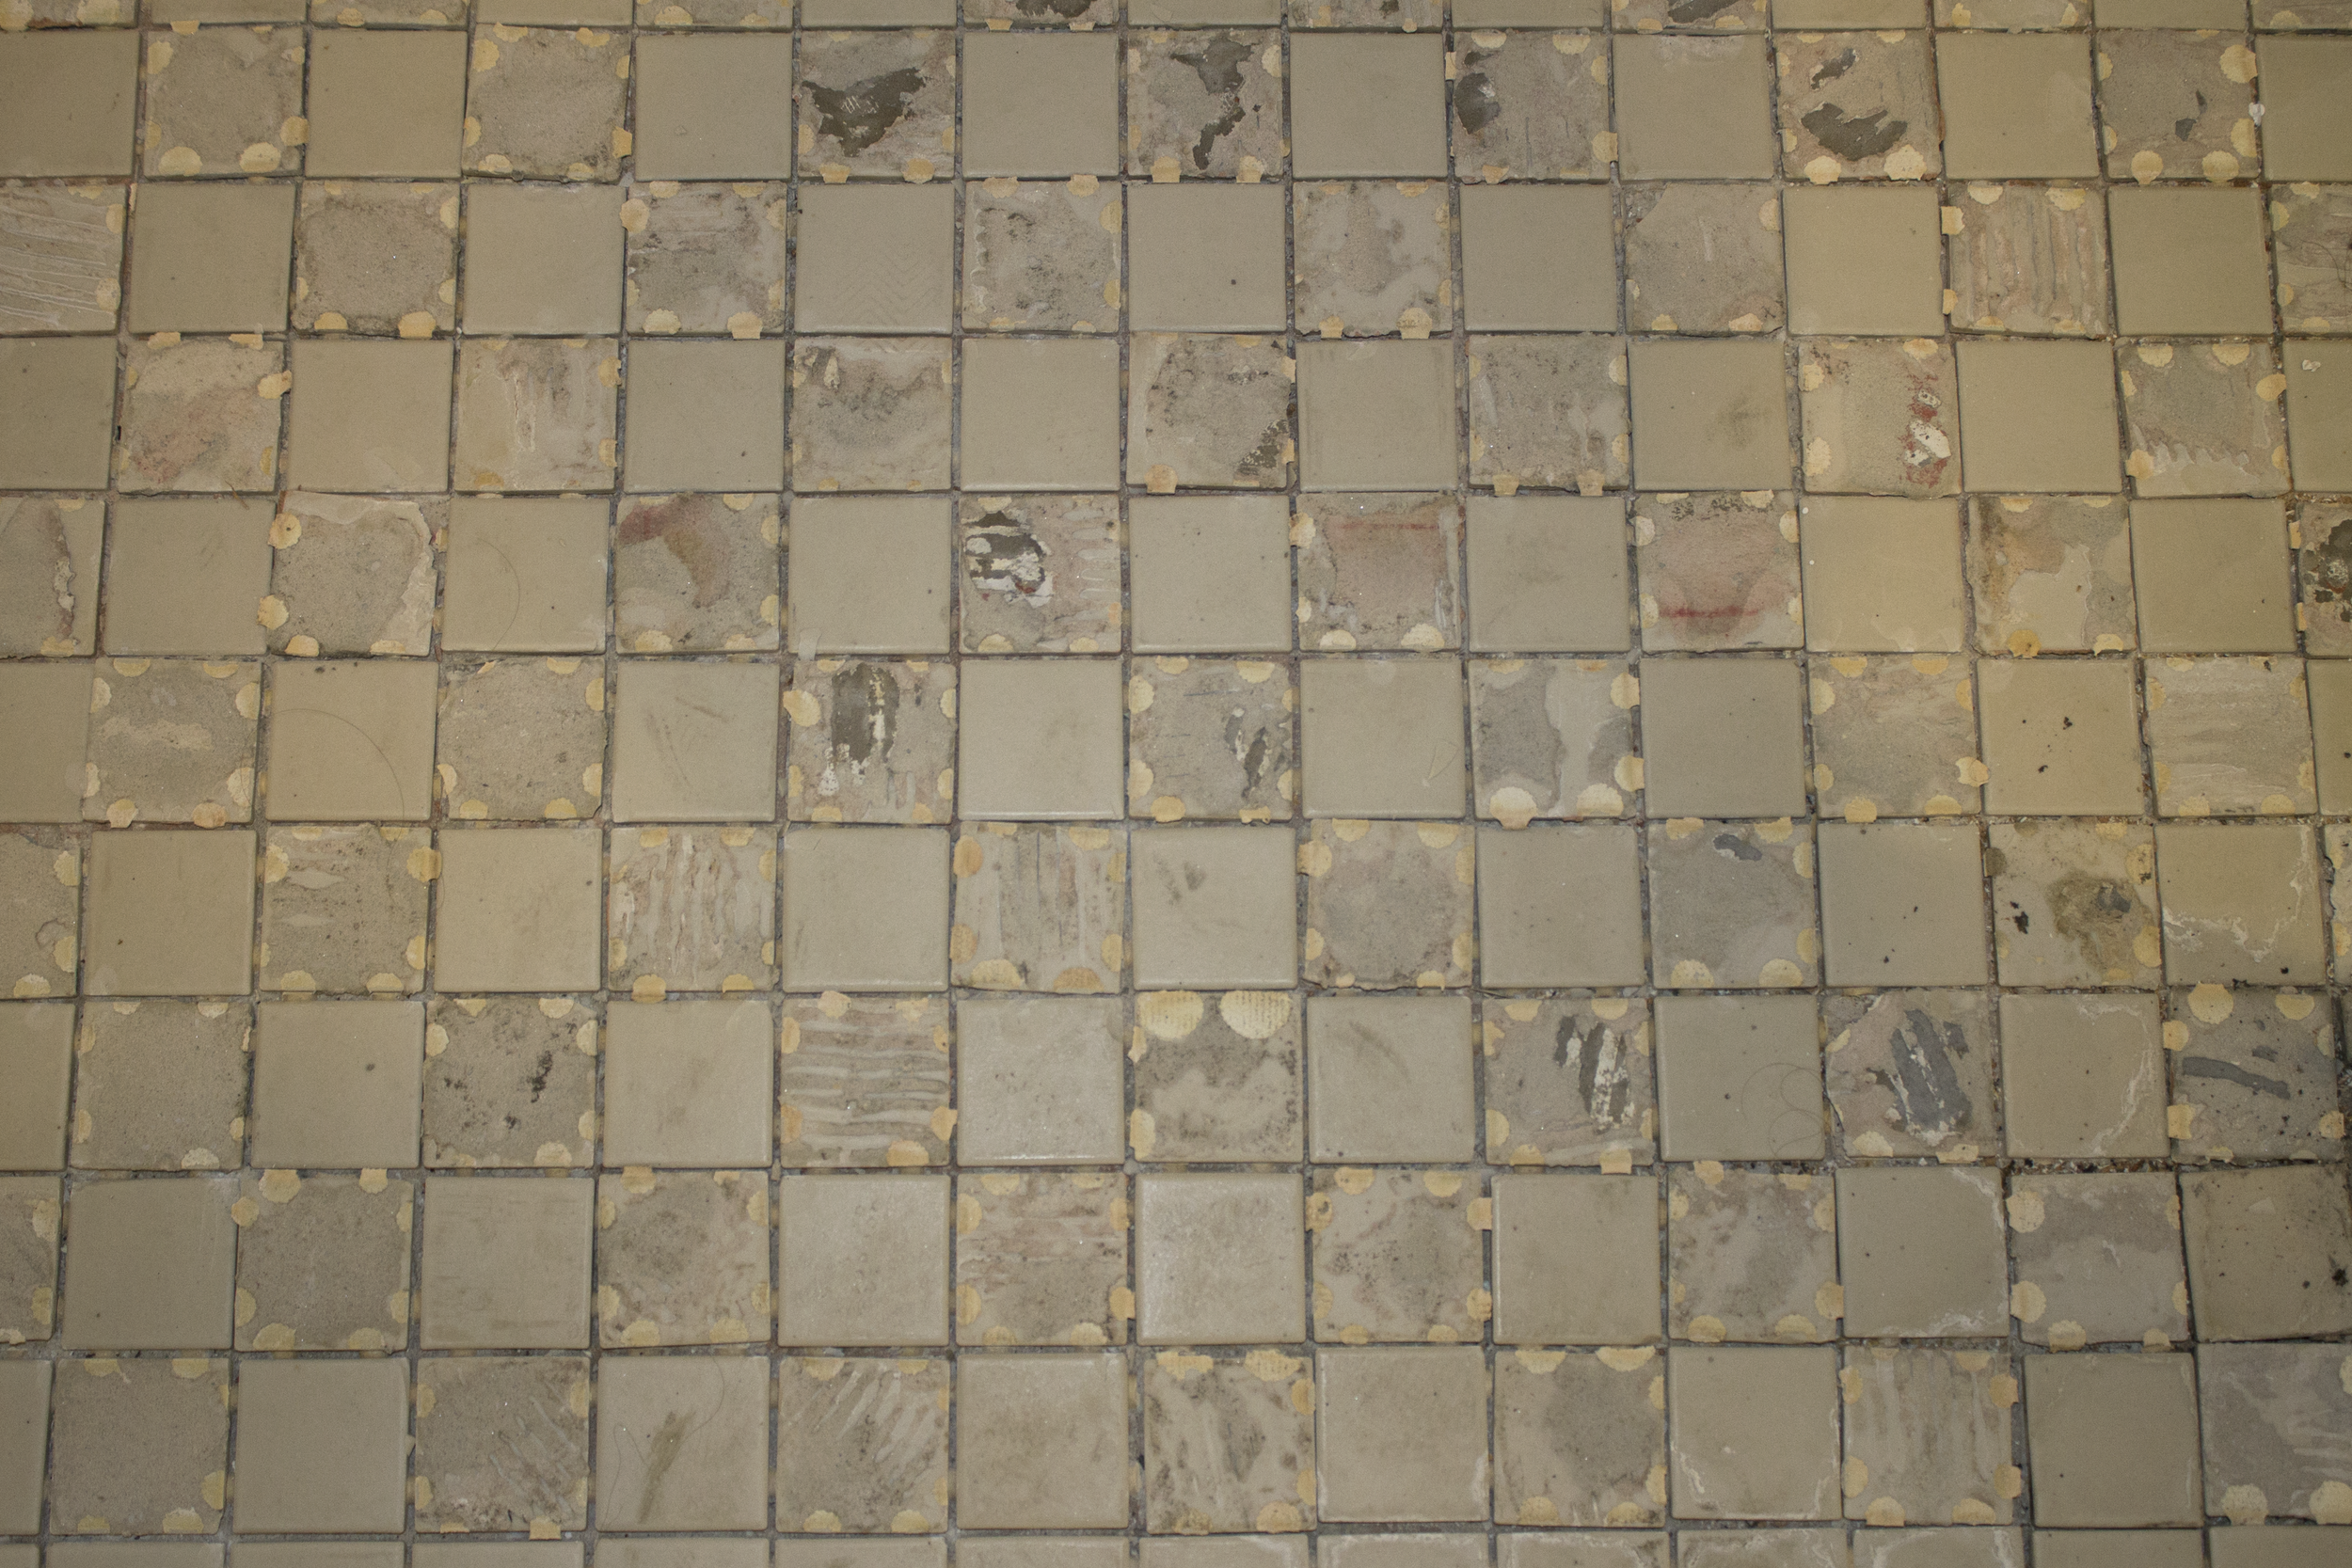 In the shower stalls, I flipped every other tile